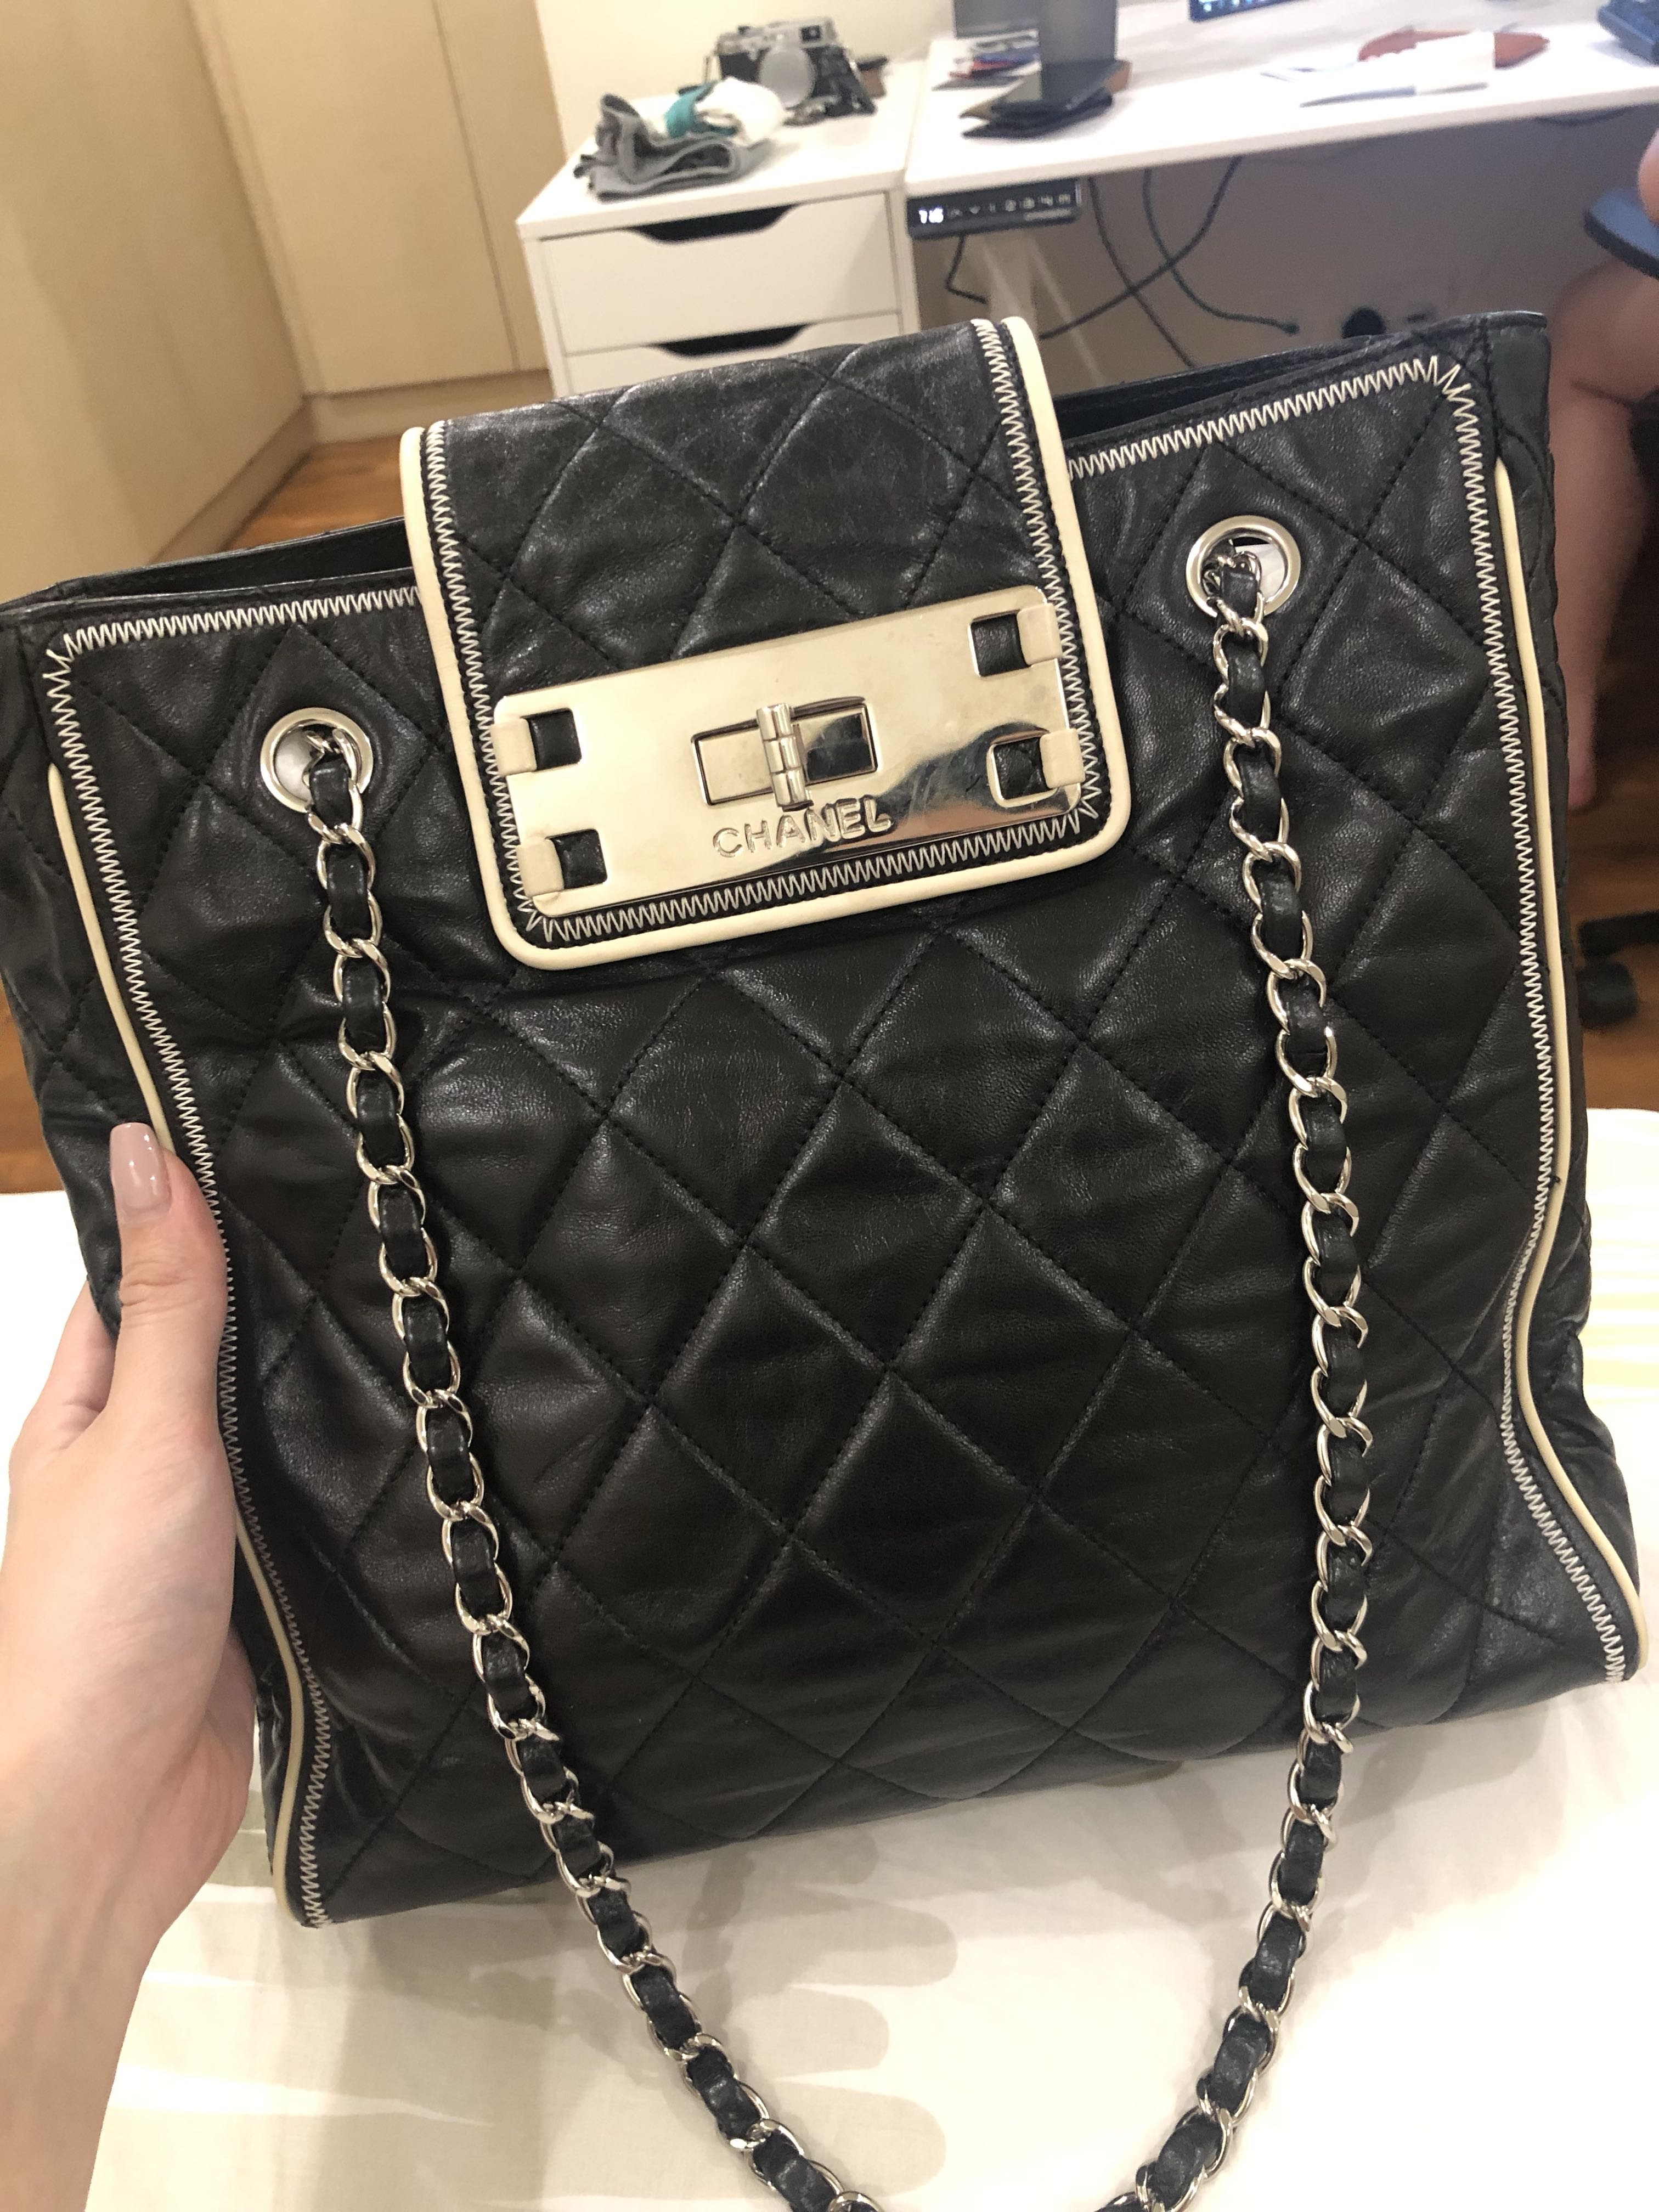 9bef2d3e7220 Chanel Vintage Tote Bag, Luxury, Bags & Wallets, Handbags on Carousell